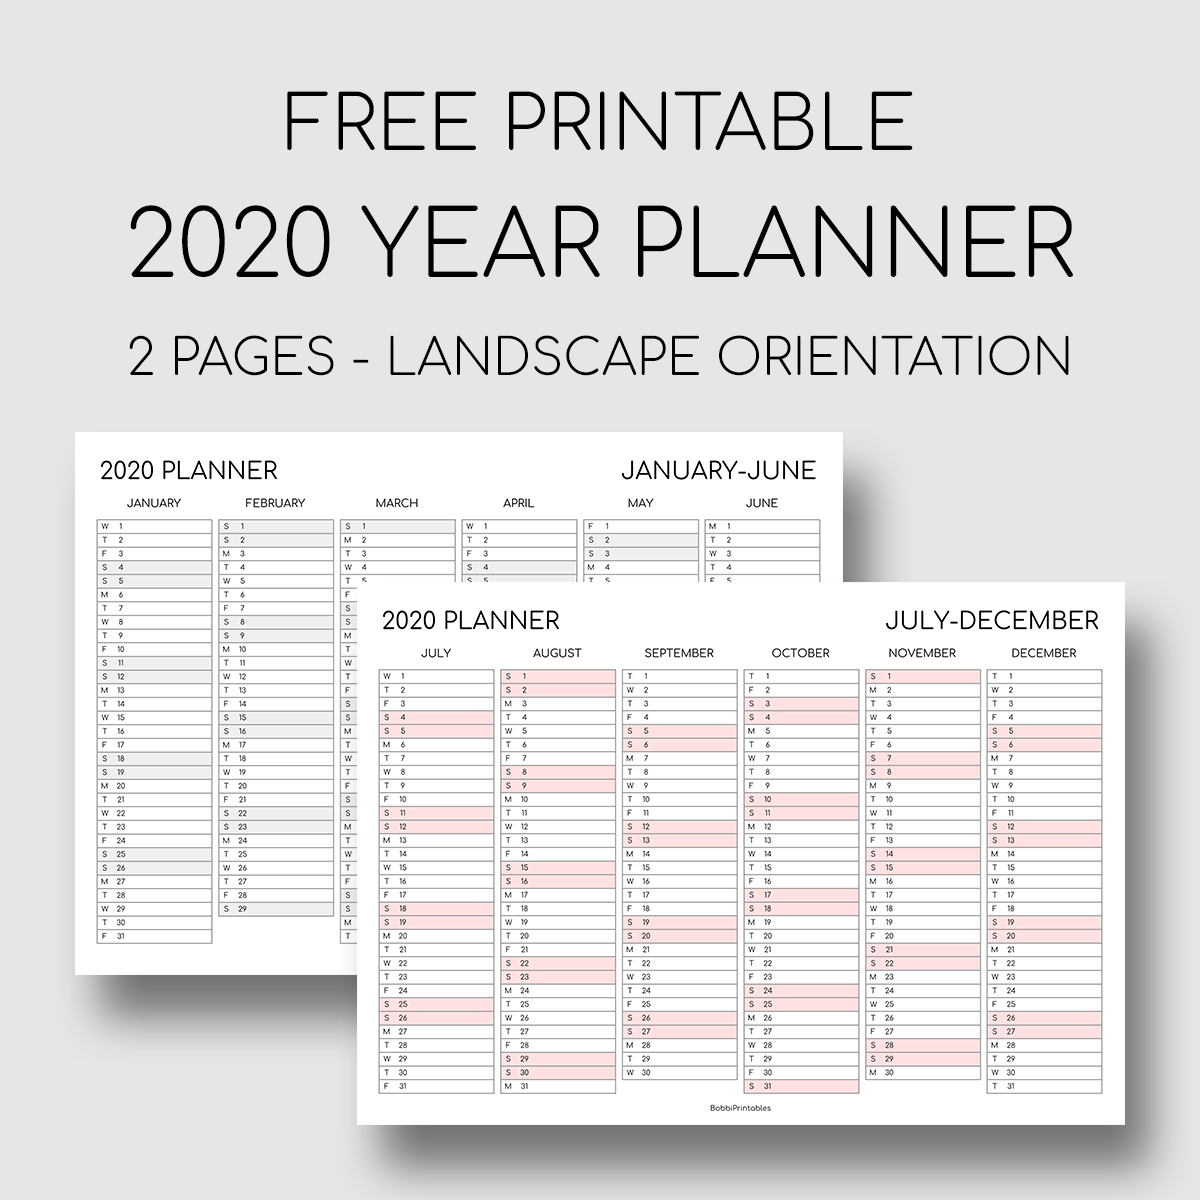 Printable 2020 Year Planner Two Pages Landscape Orientation In 2020 Yearly Planner Planner Printables Free Planner